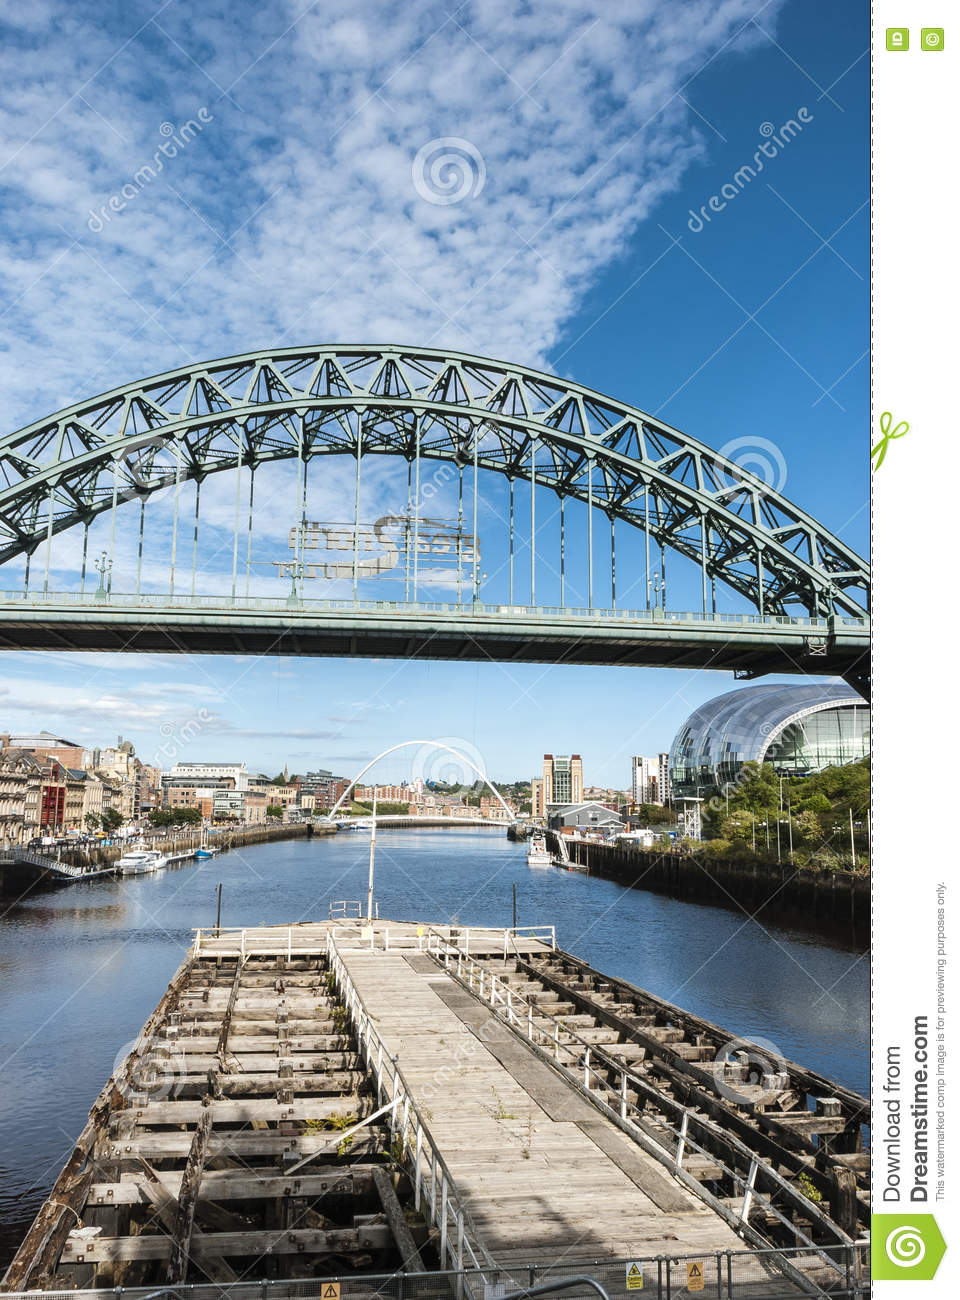 Tyne Bridge in Newcastle op de Tyne